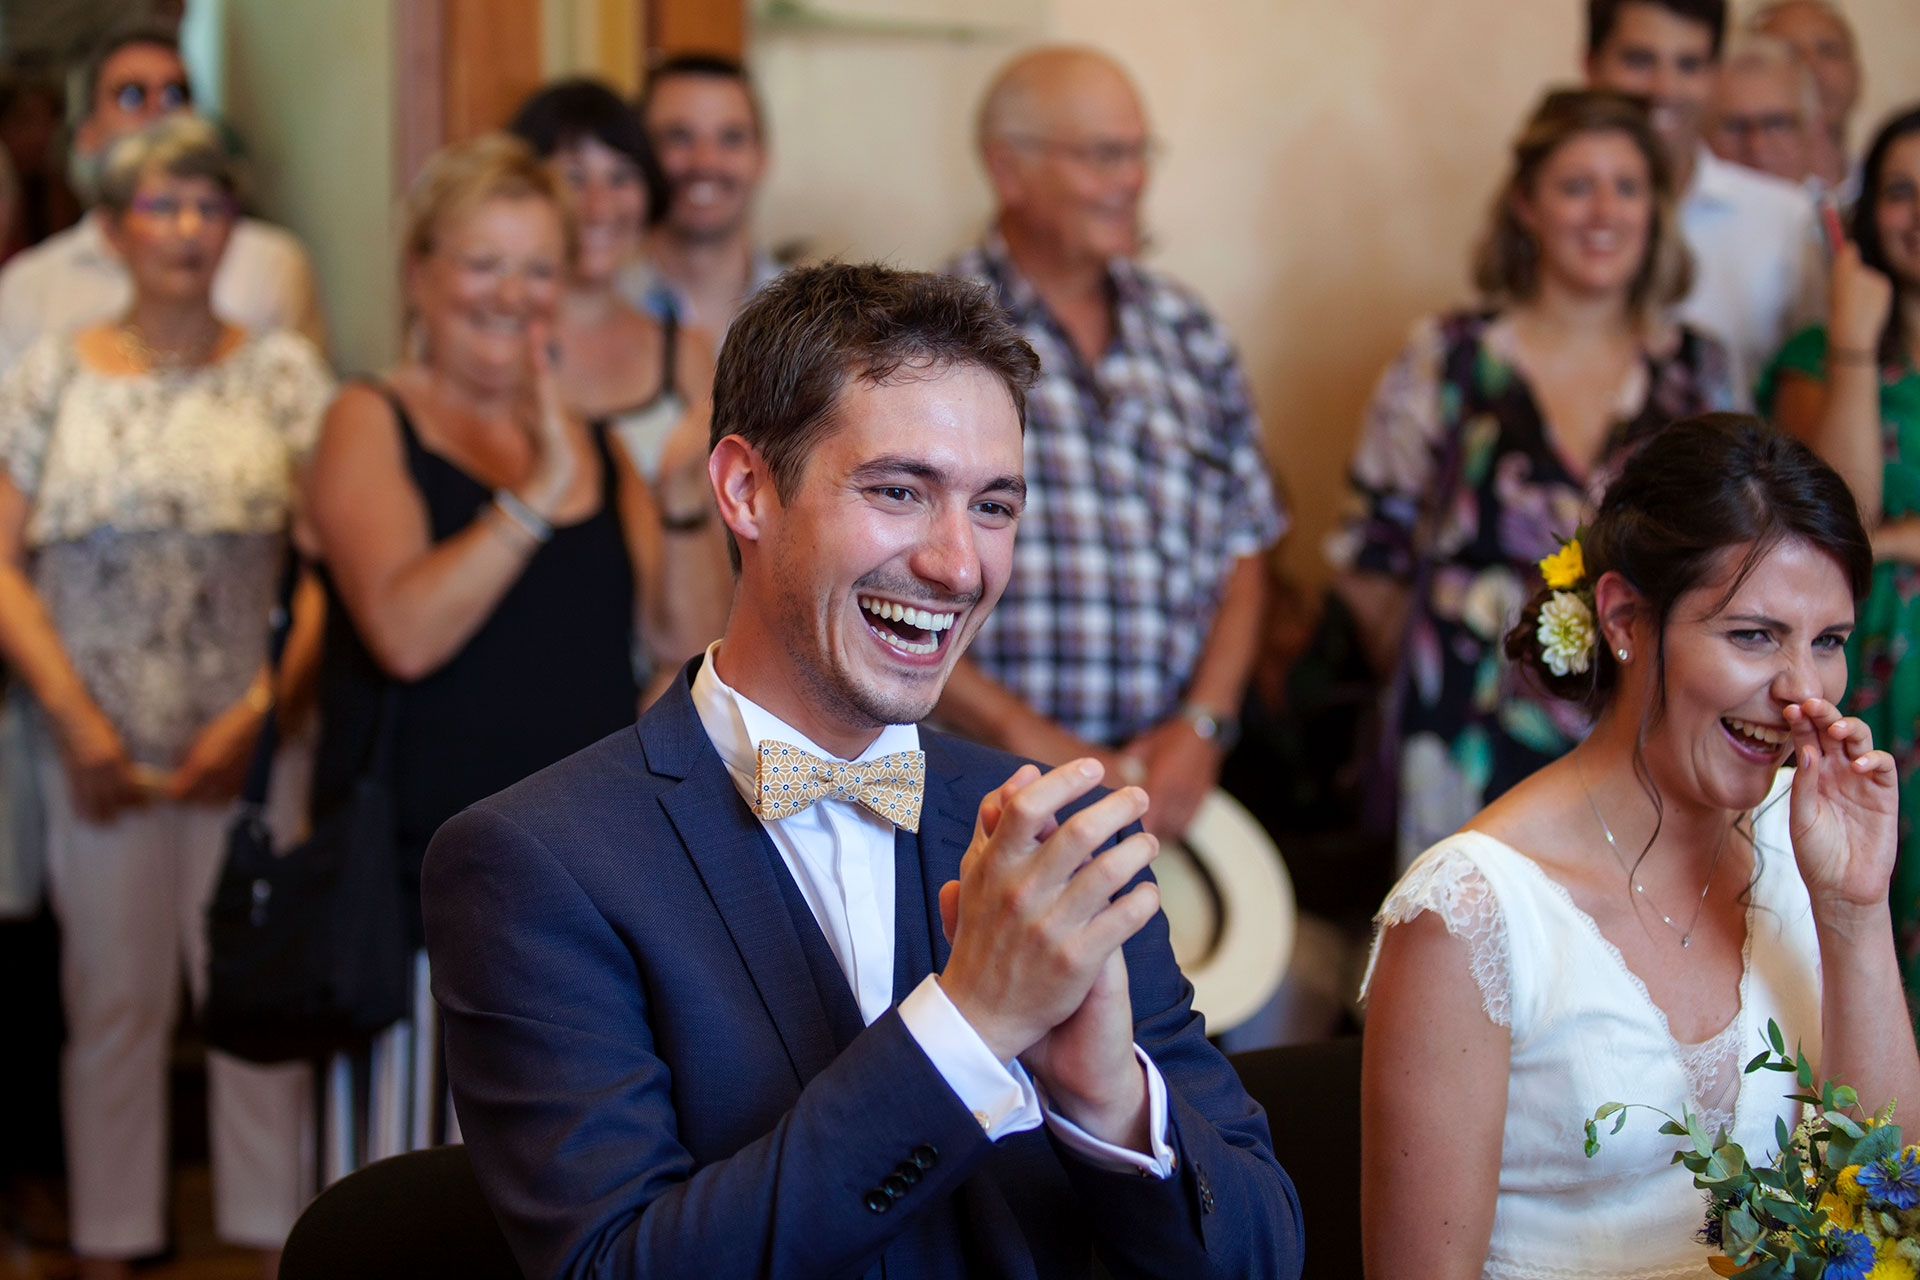 particuliers-evenements-mariage-oui-elise&quentin-22